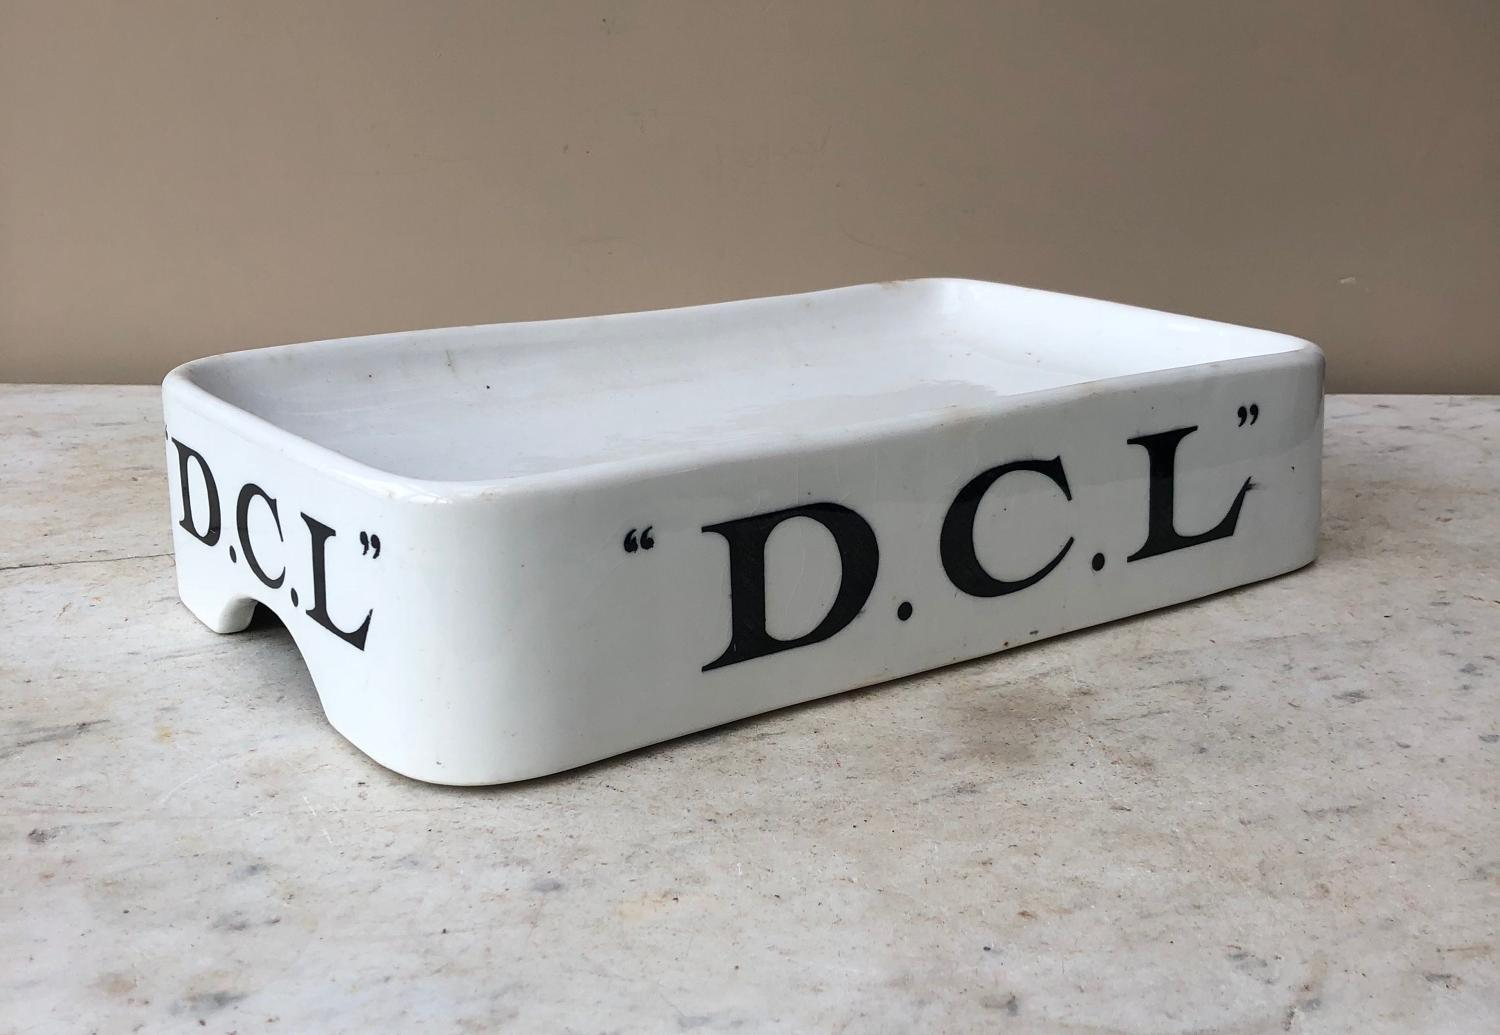 Edwardian White Ironstone Grocers Advertising Slab - DCL Yeast